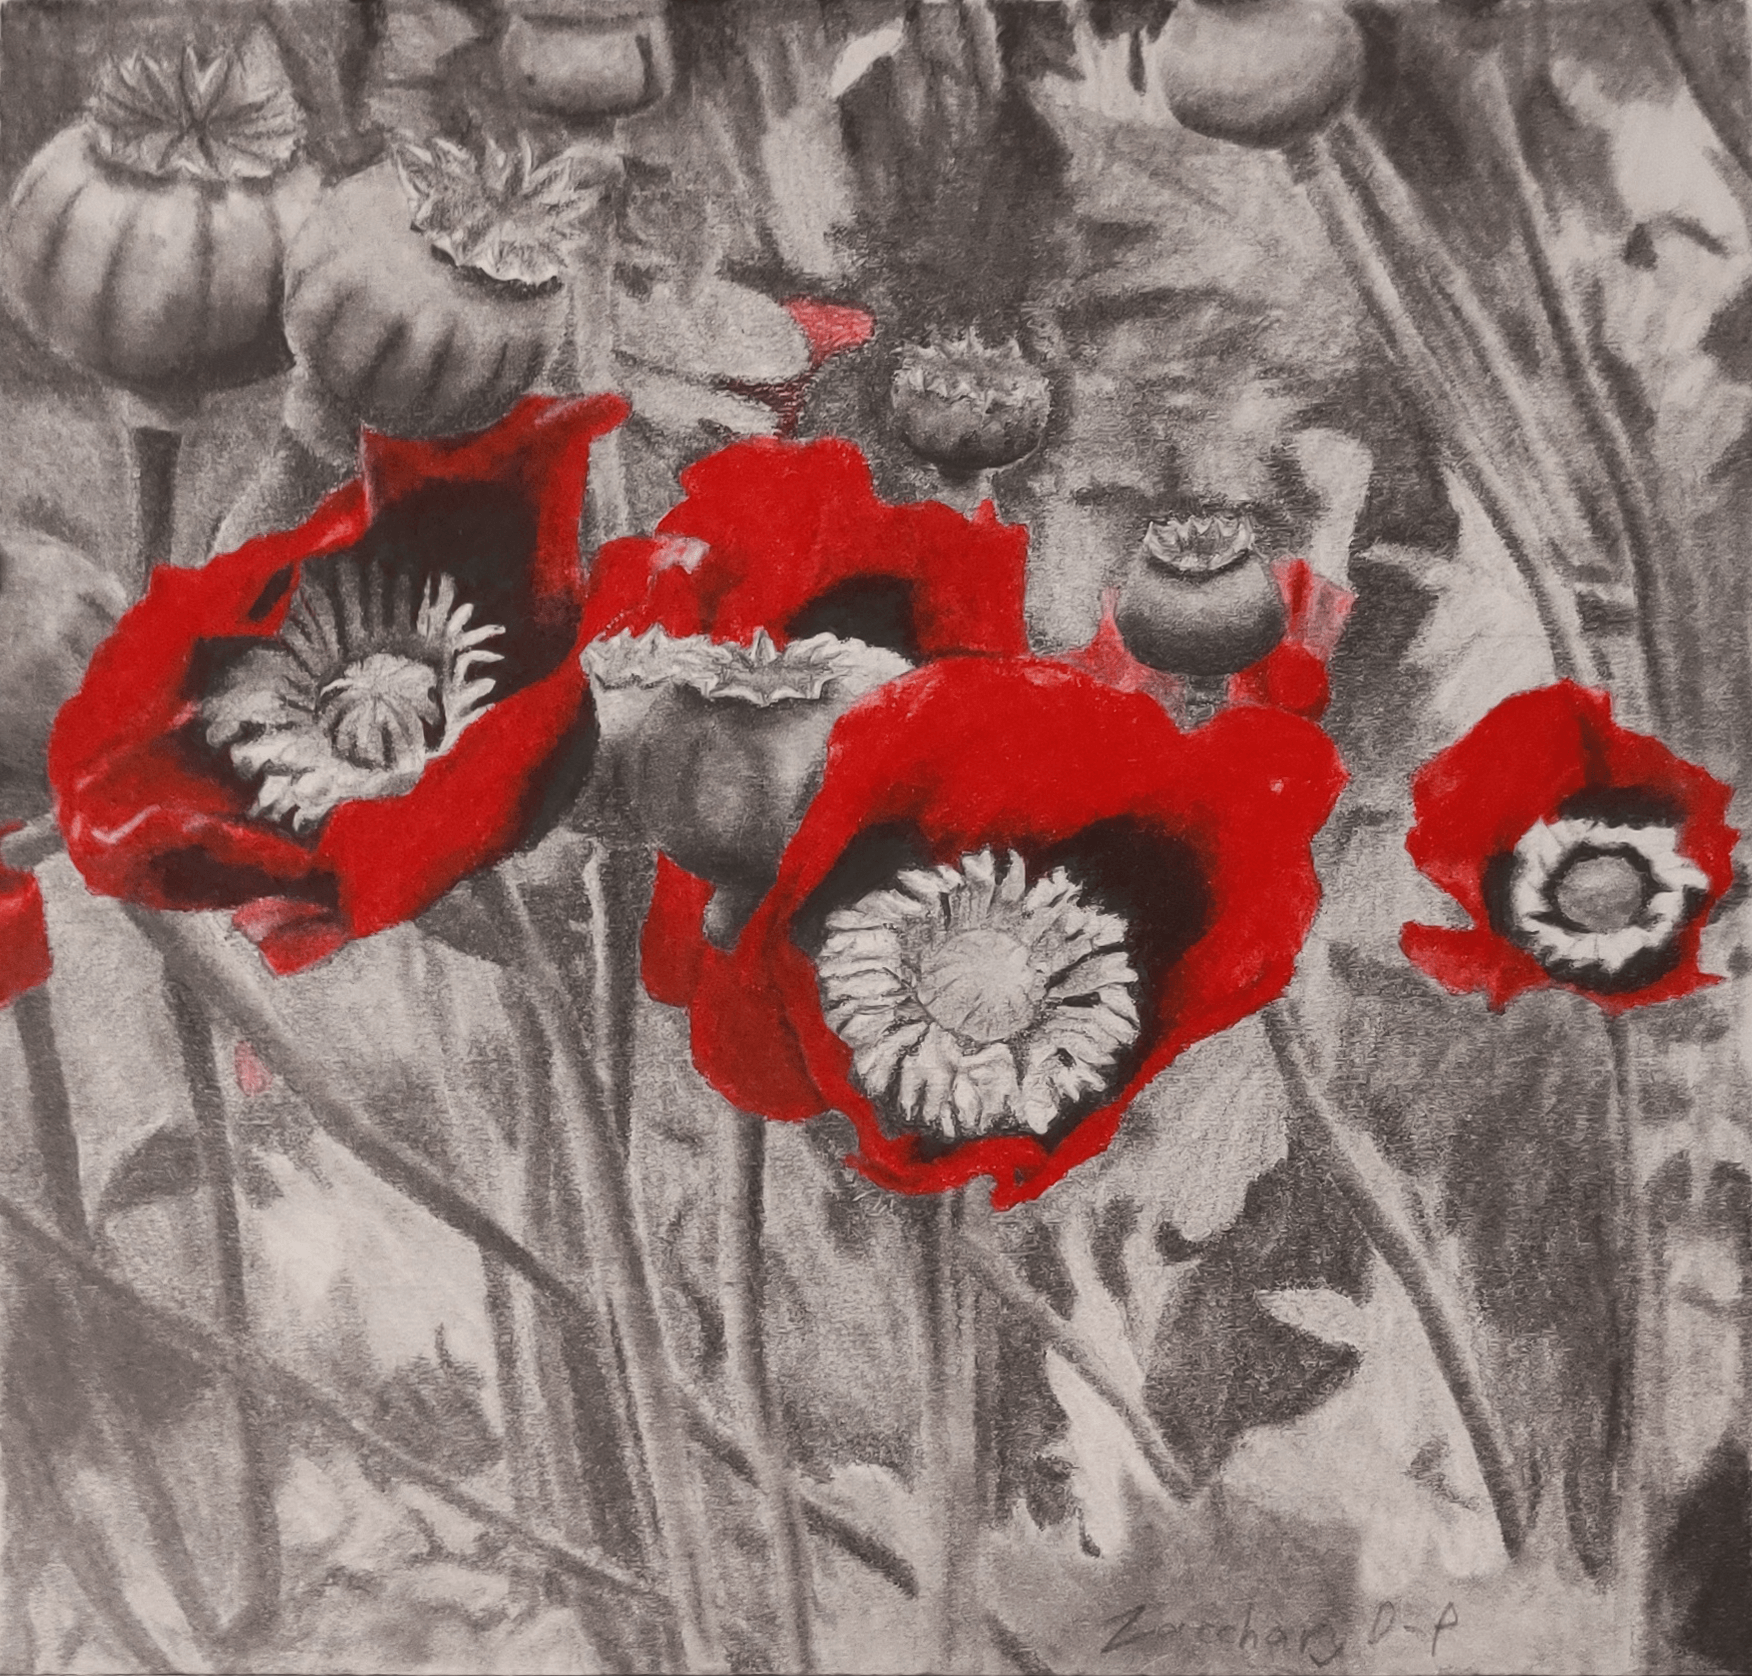 A pencil drawing of opium poppies, except the red of the poppies is done in red pencil crayon to stand out and create contrast.